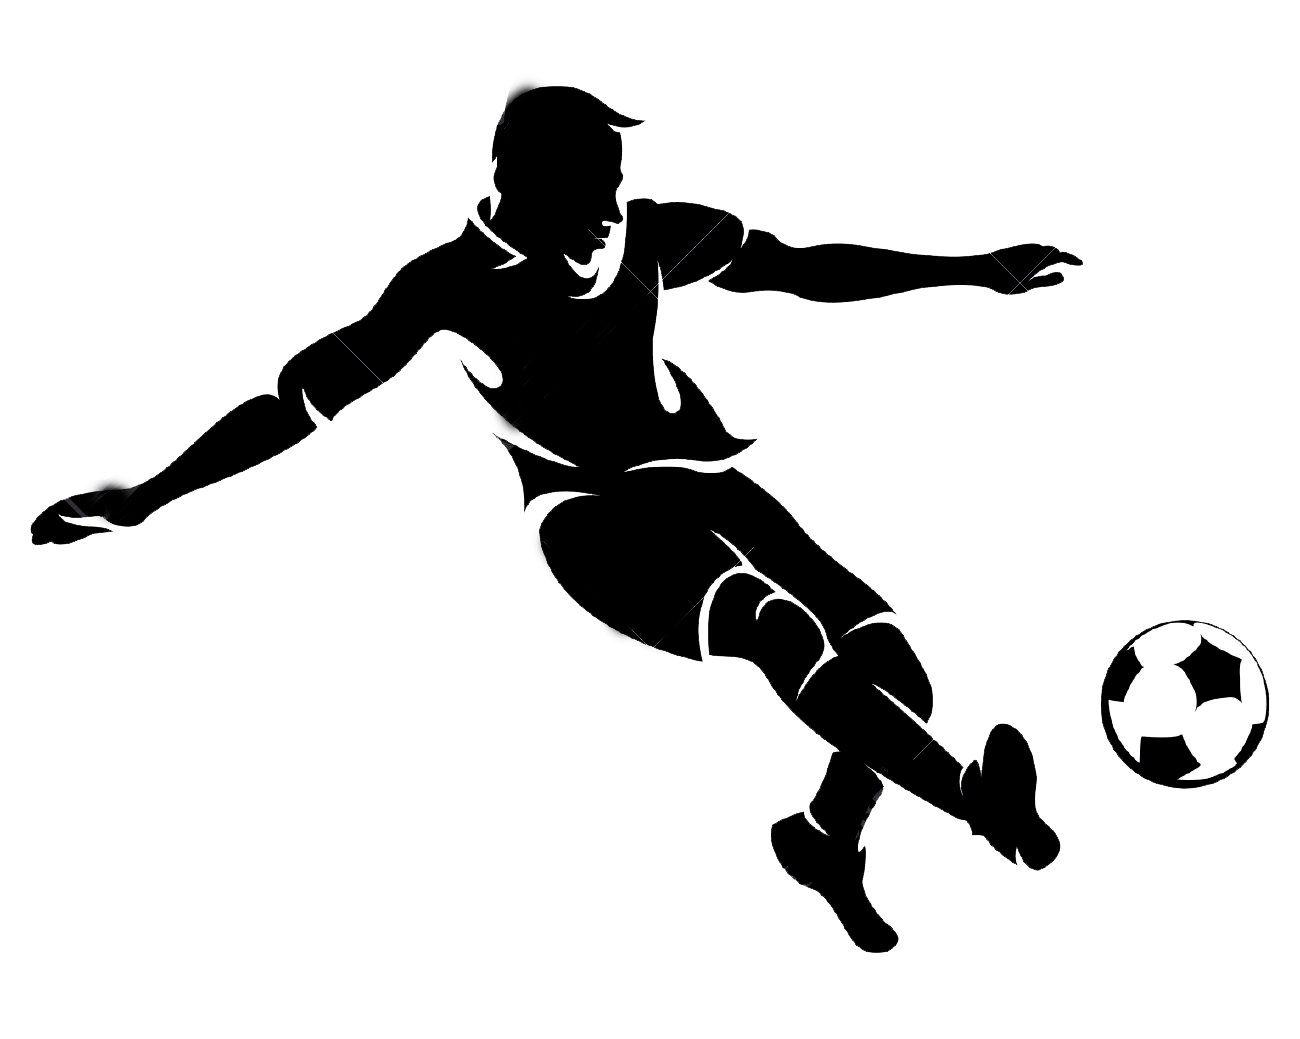 Football player clipart images image free download 28+ Collection of Football Player Clipart Images | High quality ... image free download